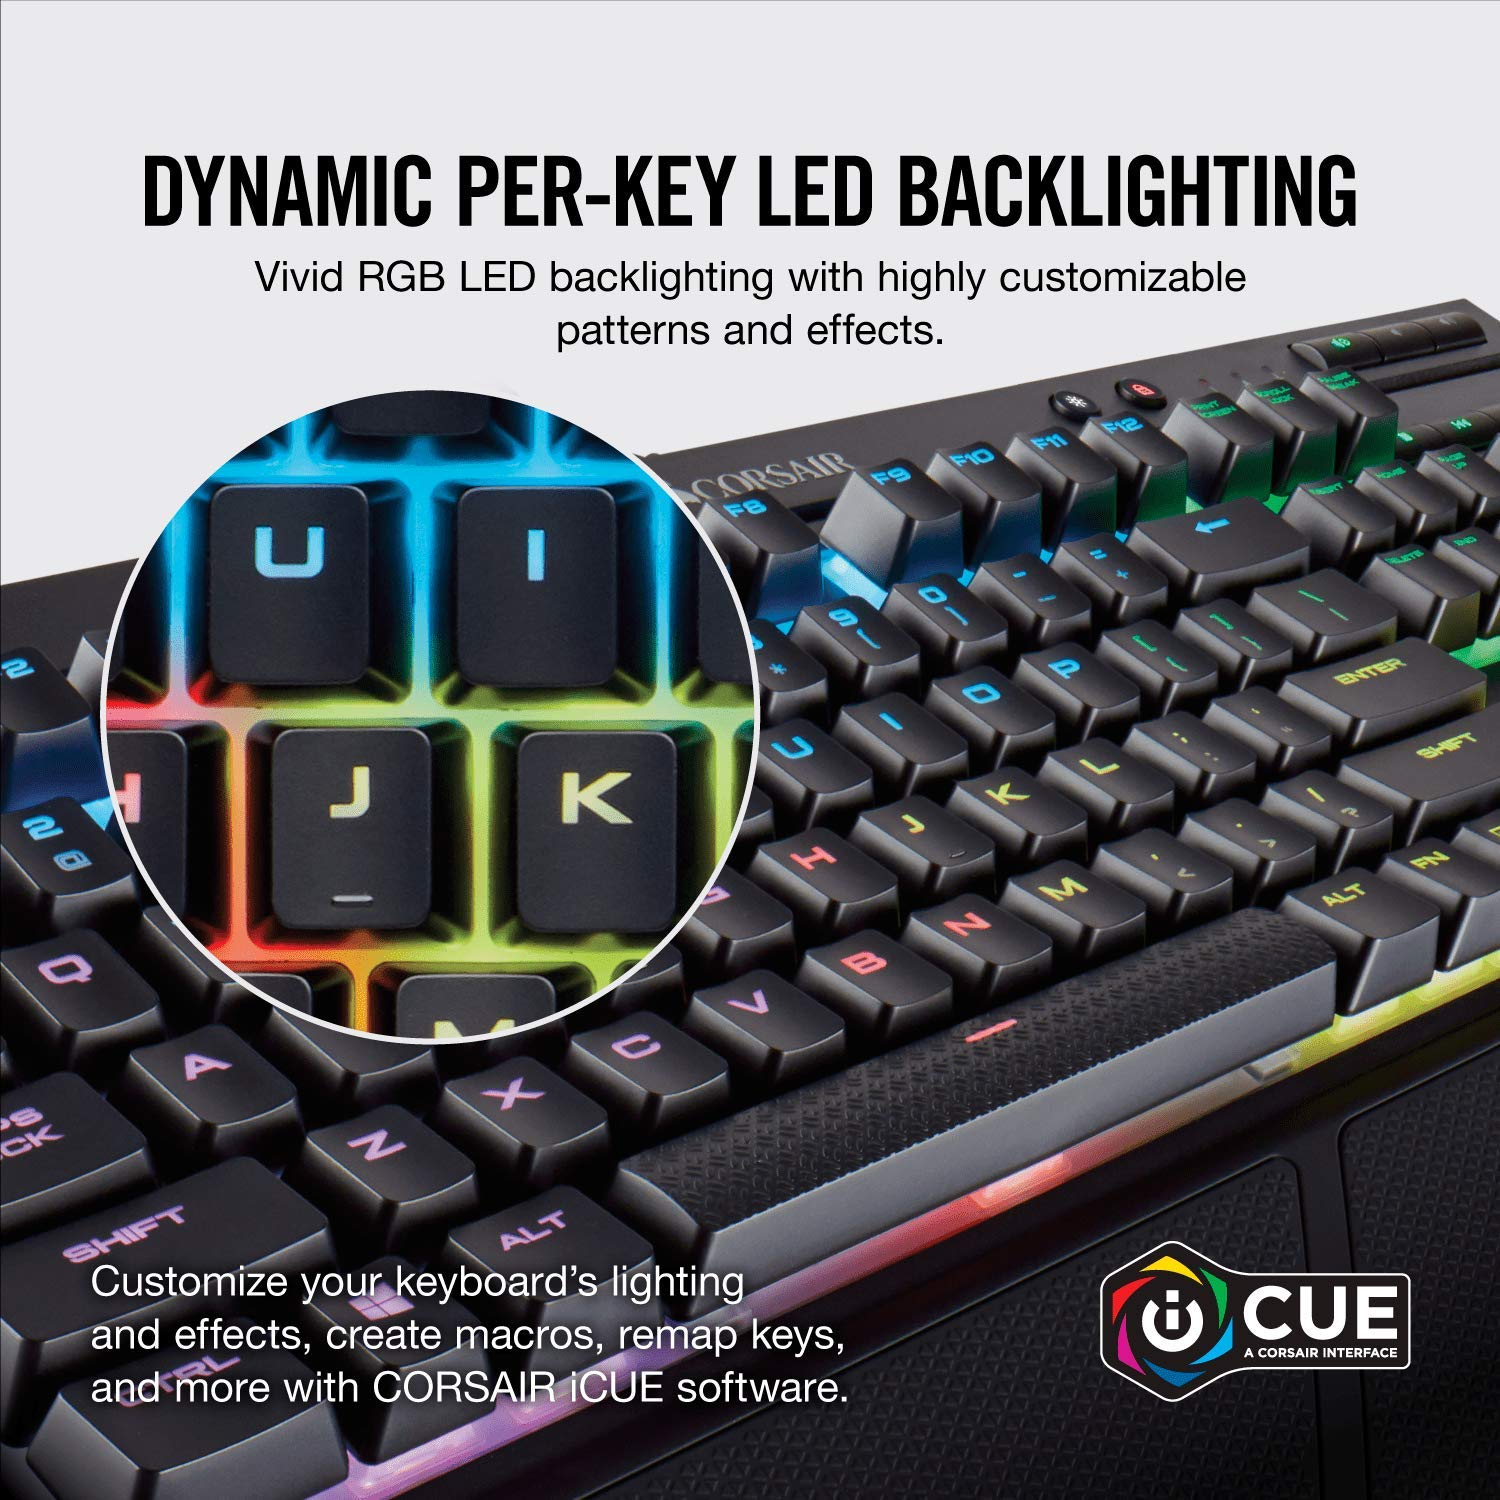 Corsair K68 RGB Mechanical Gaming Keyboard (Cherry MX Red Switches: Linear  and Fast, Per Key Multi-Colour RGB Backlighting, IP32 Dust and Spill